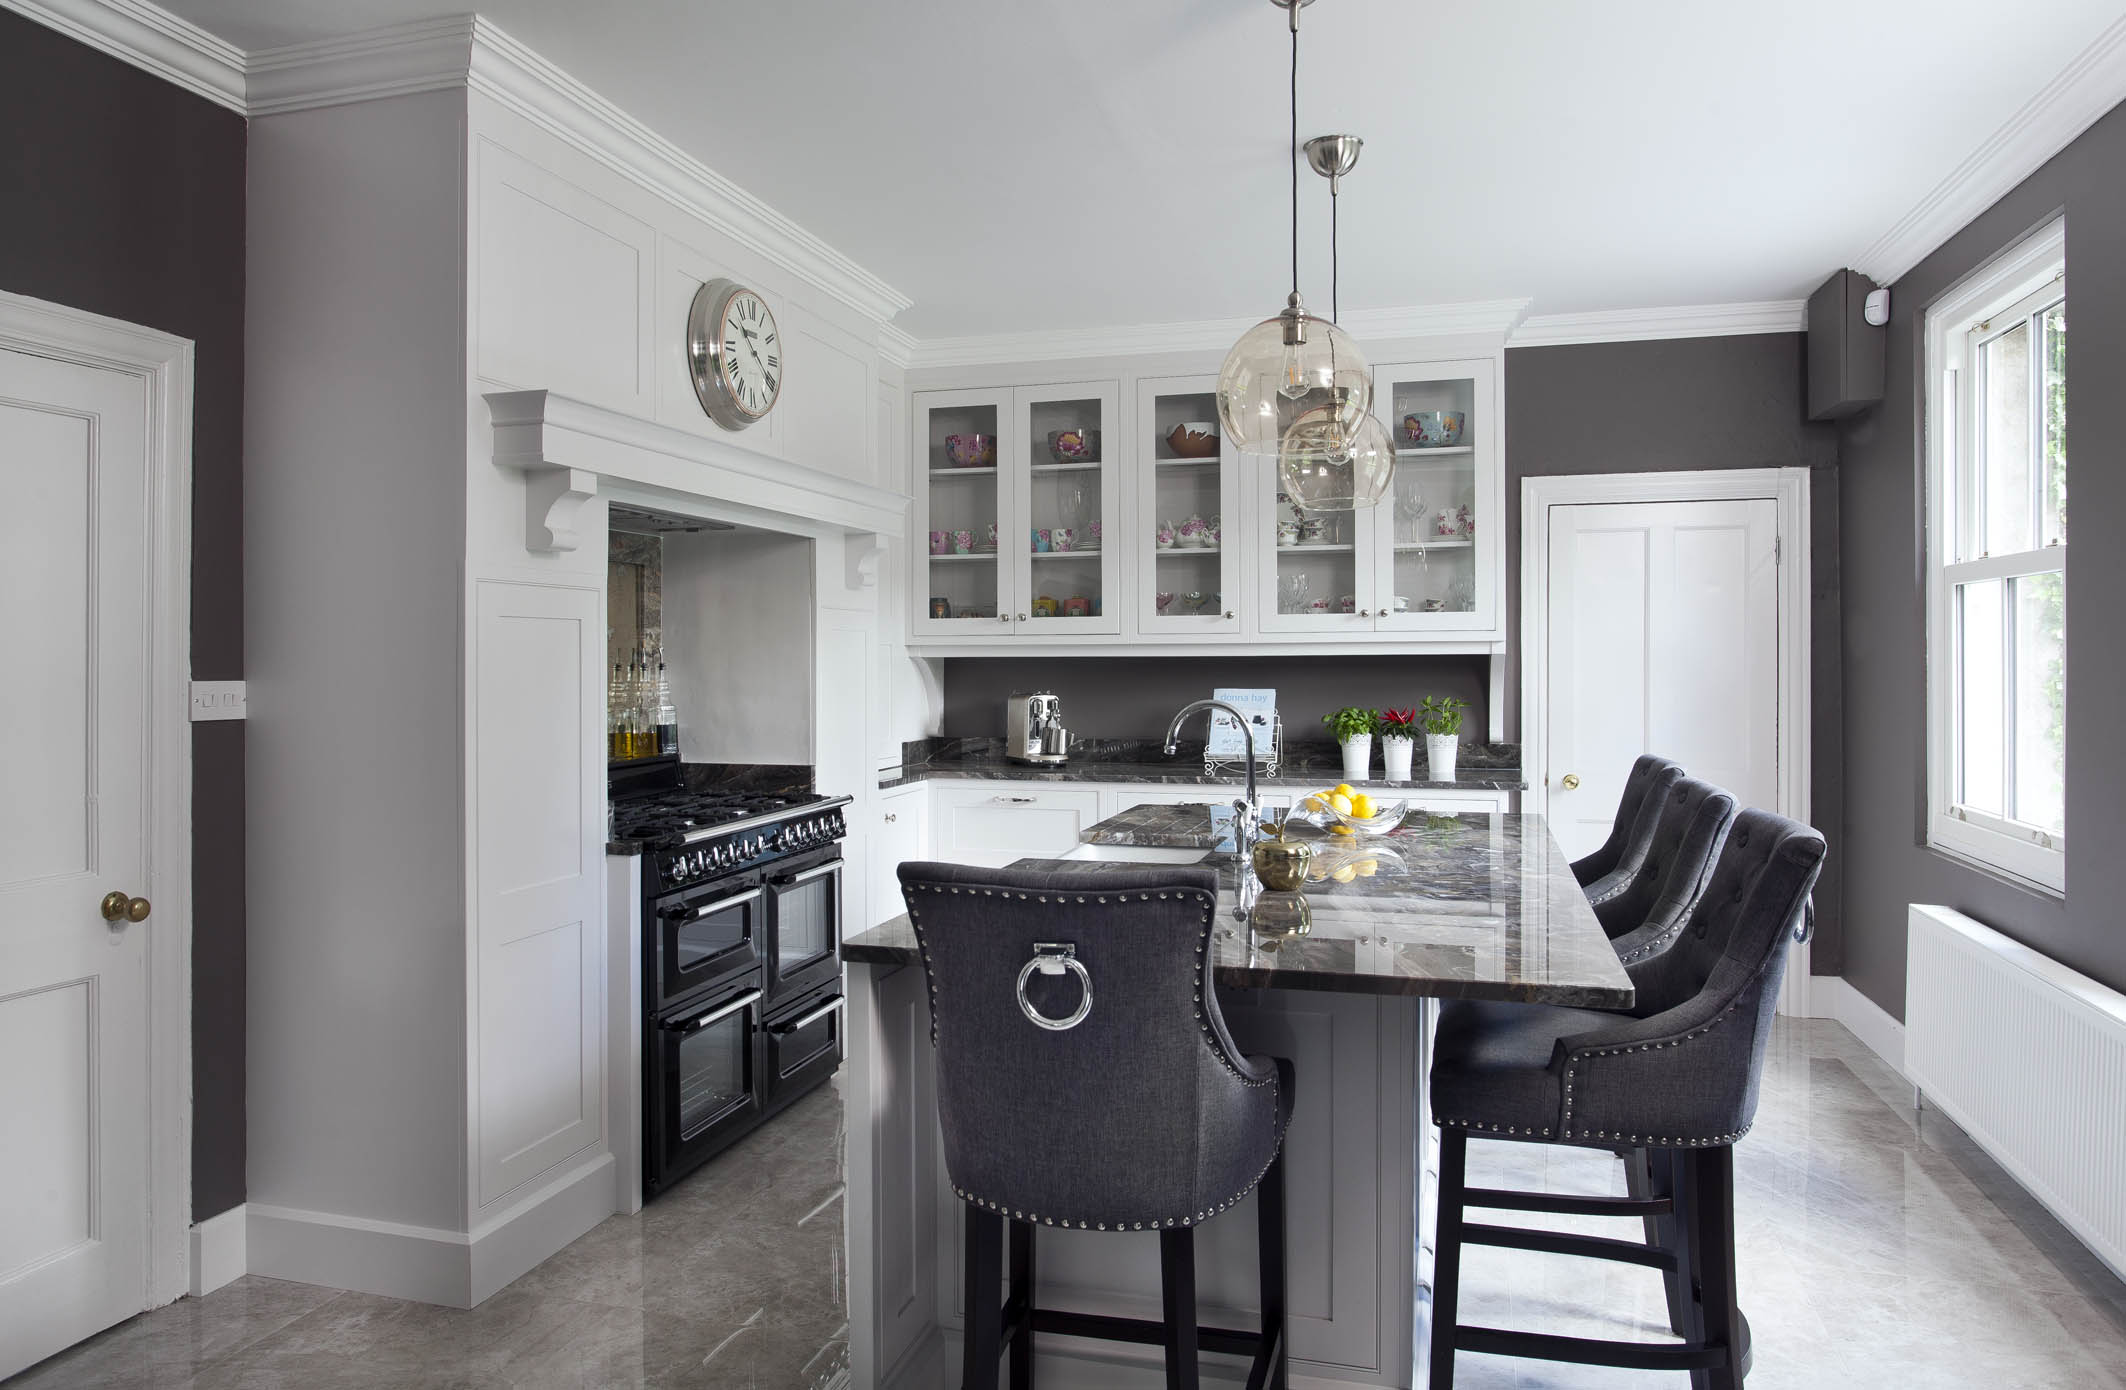 design house kitchen dillons kitchens made kitchens ashbourne meath 3162